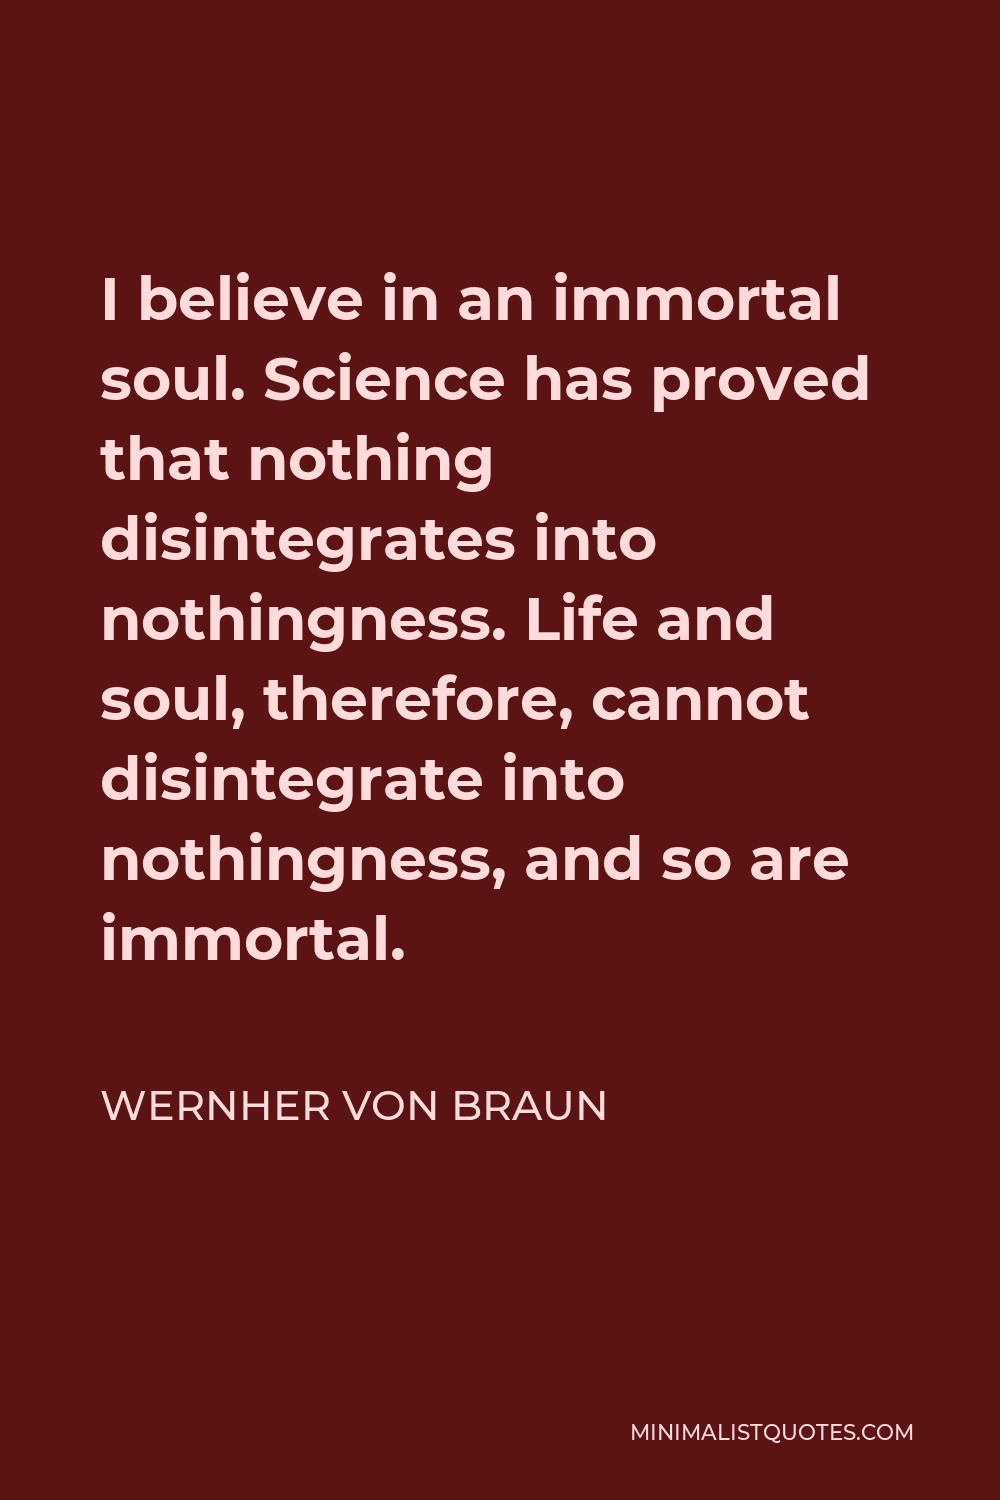 Wernher von Braun Quote - I believe in an immortal soul. Science has proved that nothing disintegrates into nothingness. Life and soul, therefore, cannot disintegrate into nothingness, and so are immortal.